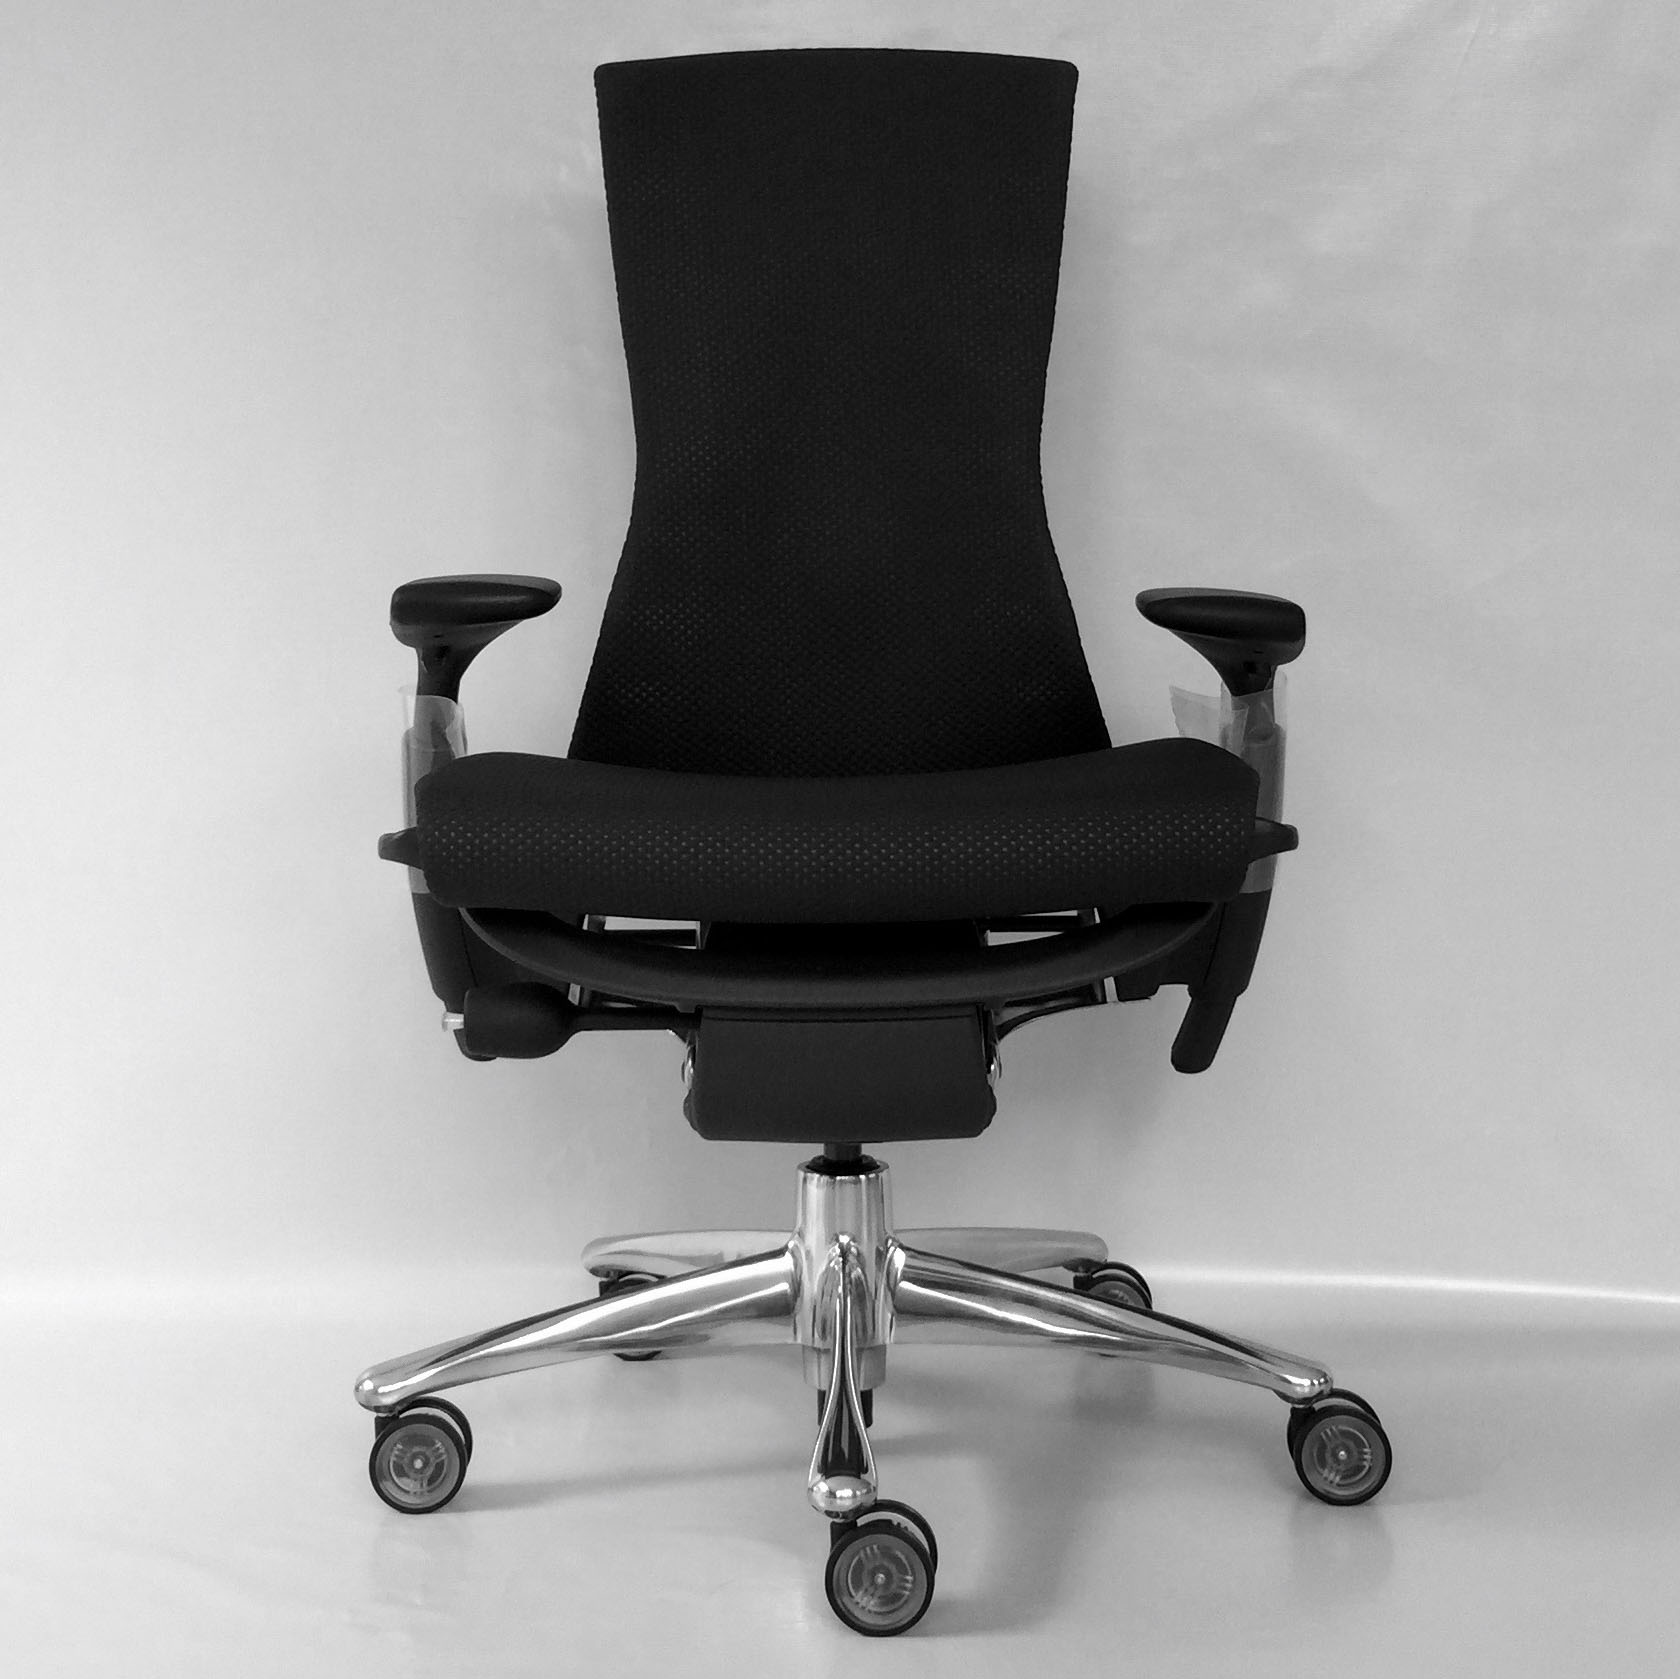 EMBODY_CHAIR_CARBON BALANCE 02